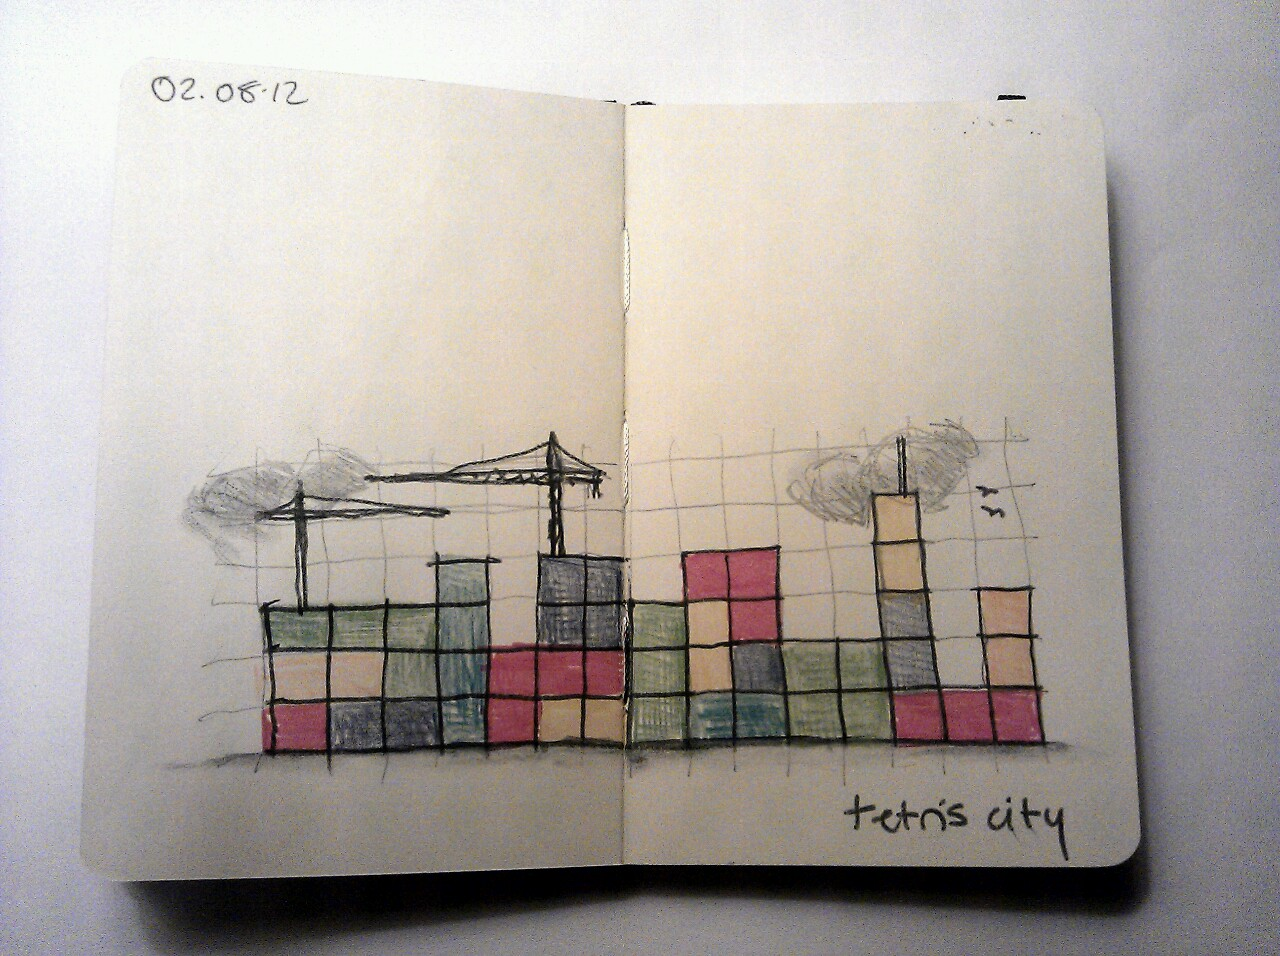 365 drawings later … day 184 … tetris city